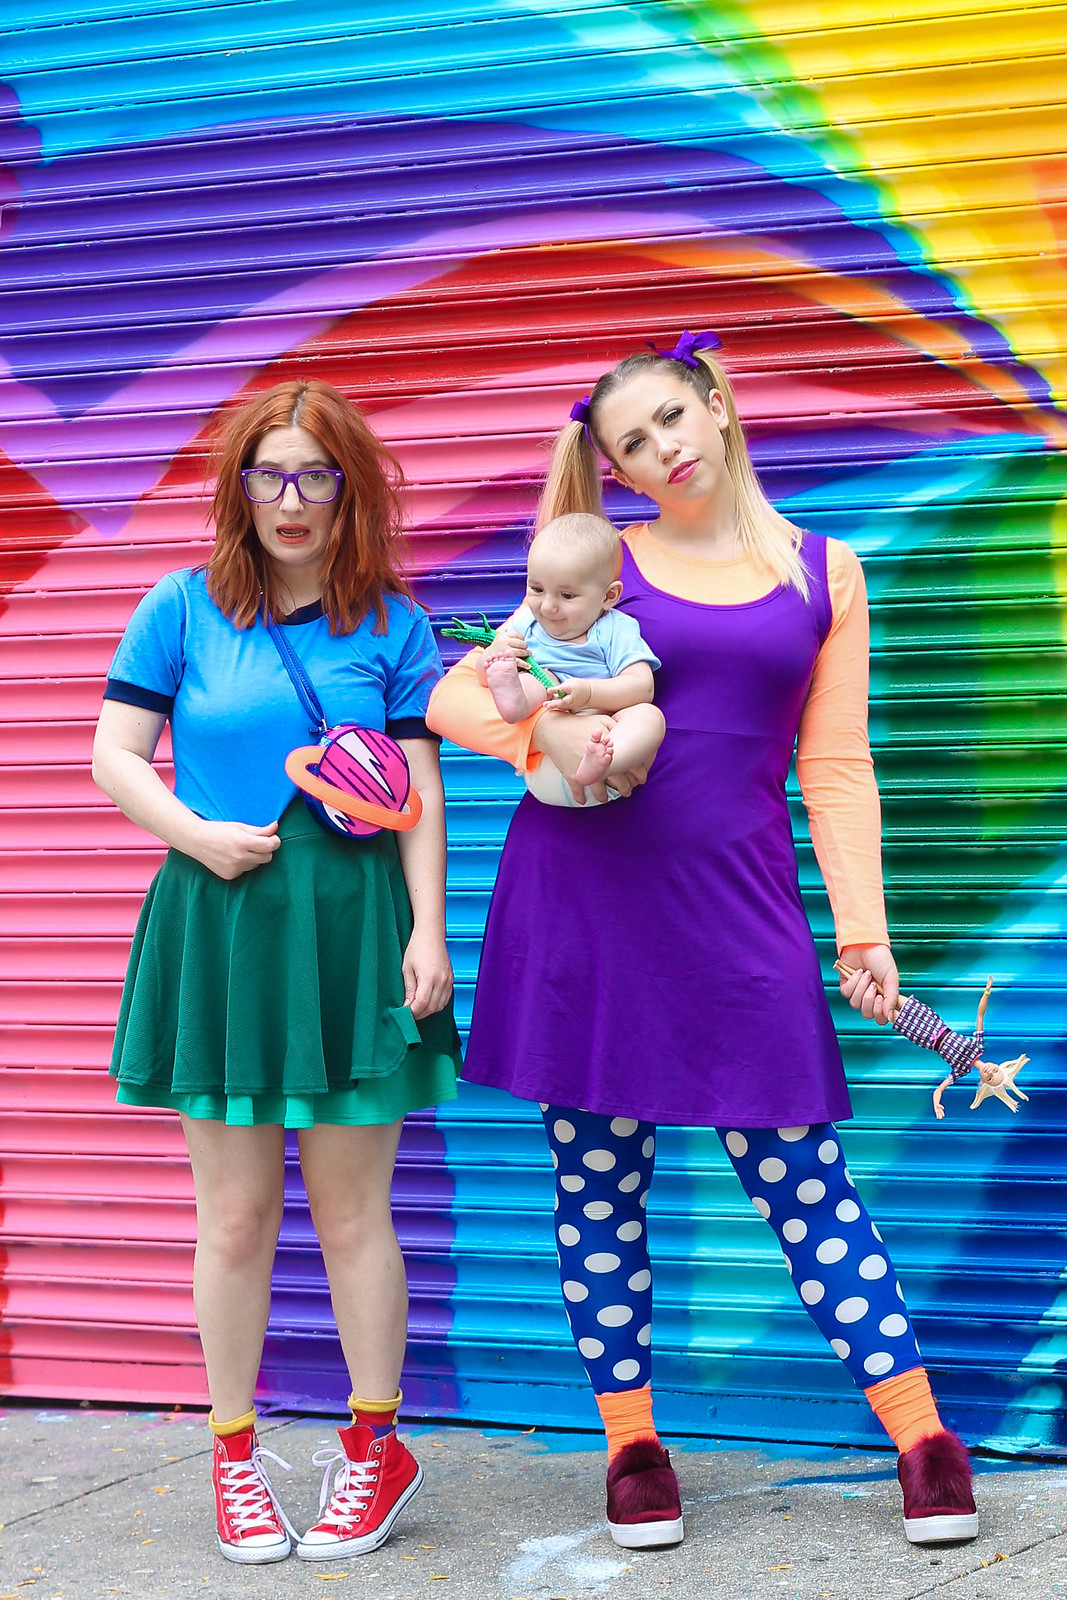 Rugrats Nickelodeon Angelica Tommy Pickles Chuckie Finster DIY Costume | Last Minute Halloween Costumes You Can Amazon Prime